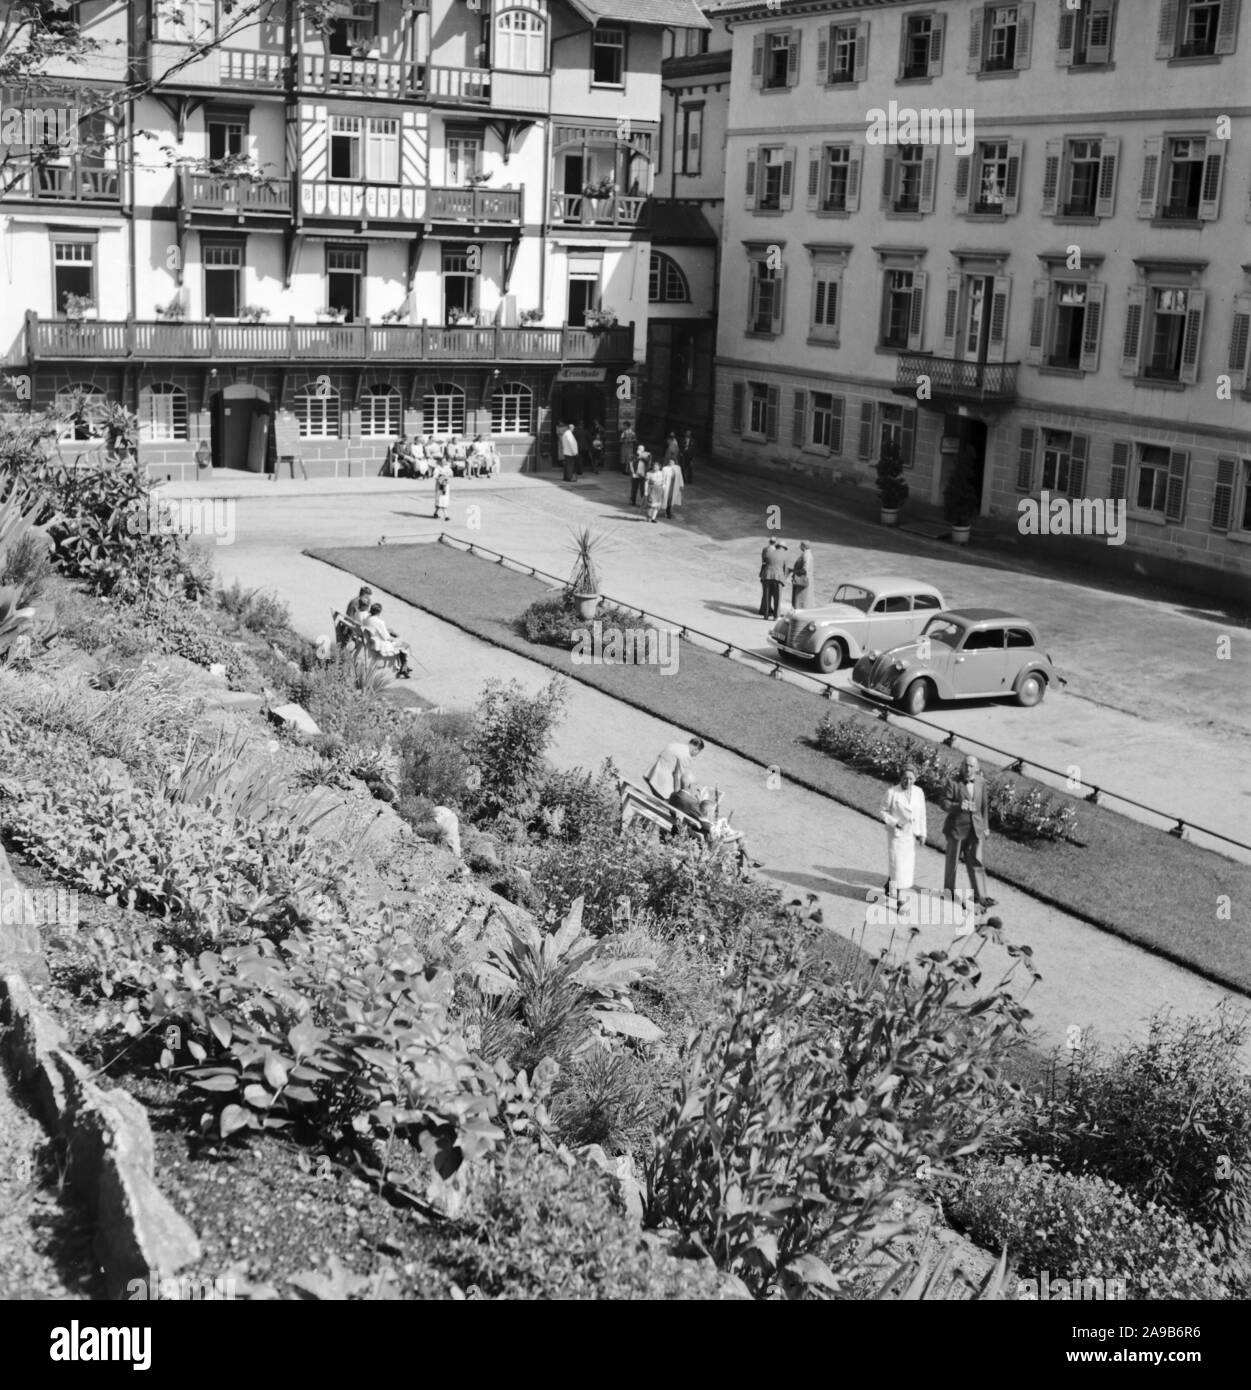 Beginning of summer in the city, Germany 1930s. Stock Photo